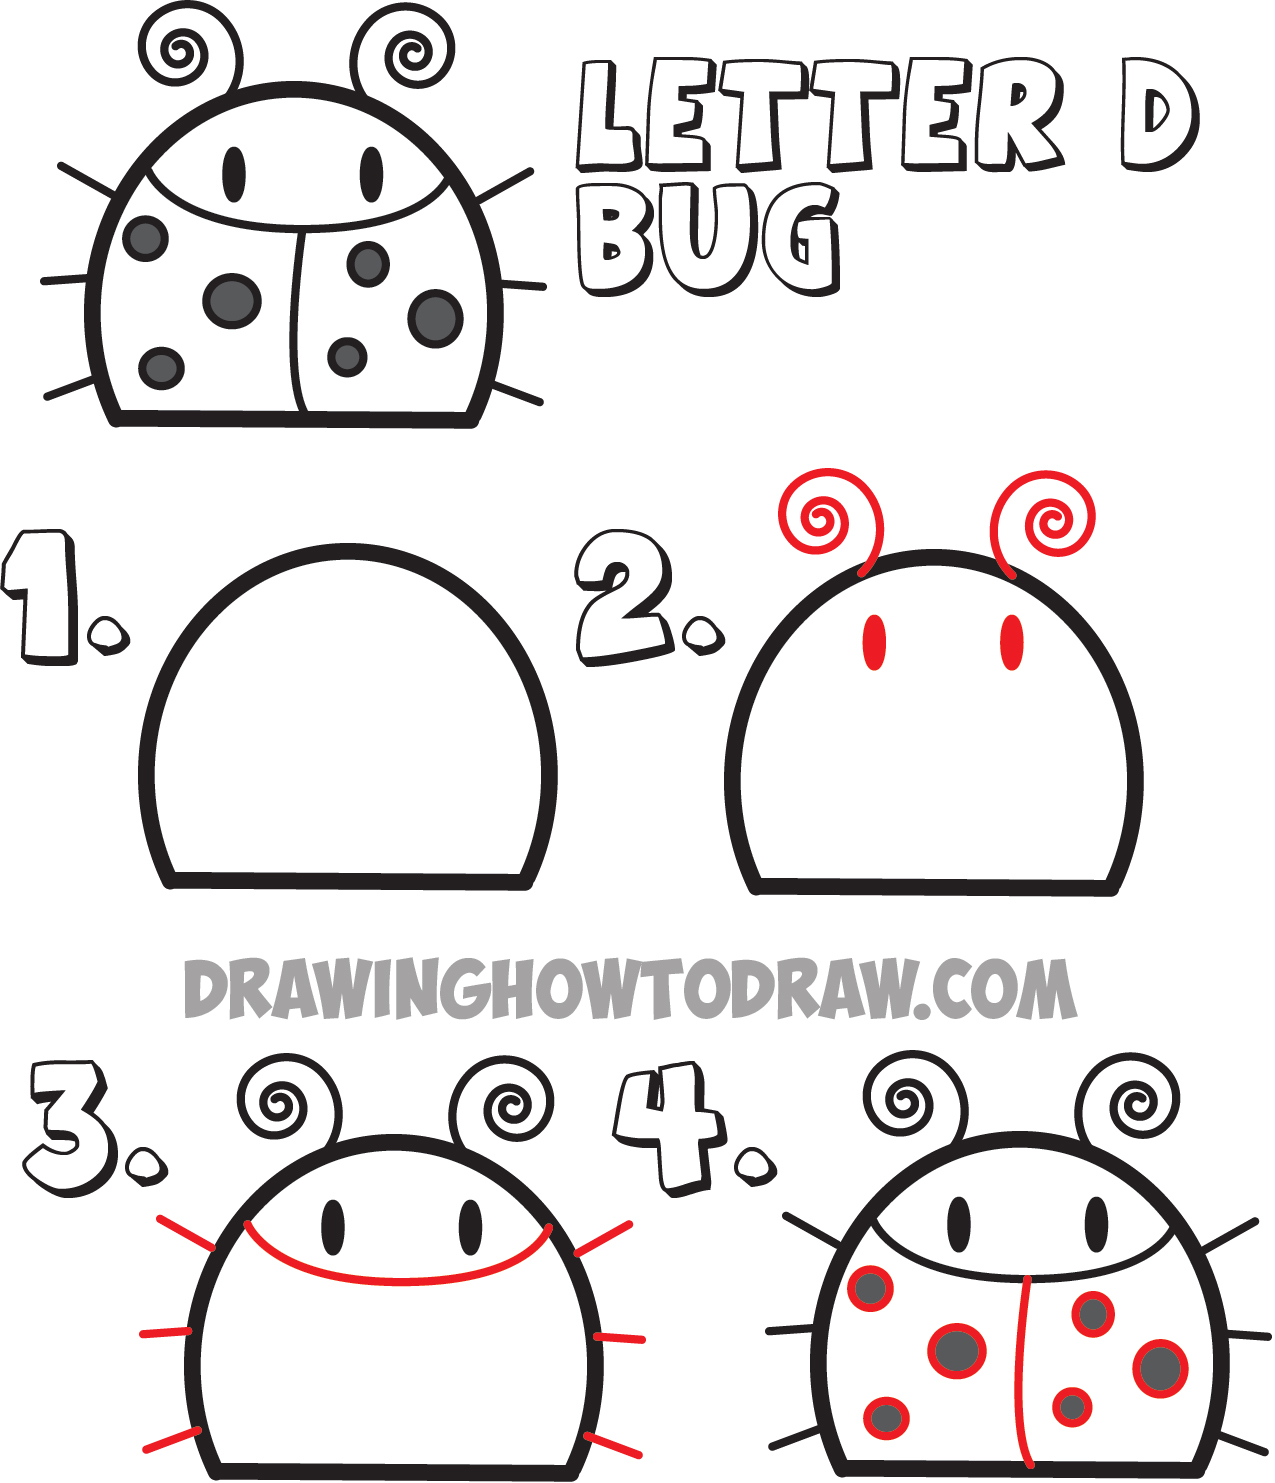 Uncategorized Drawing Lesson For Kids huge guide to drawing cartoon animals from the uppercase letter d how draw a bug shape